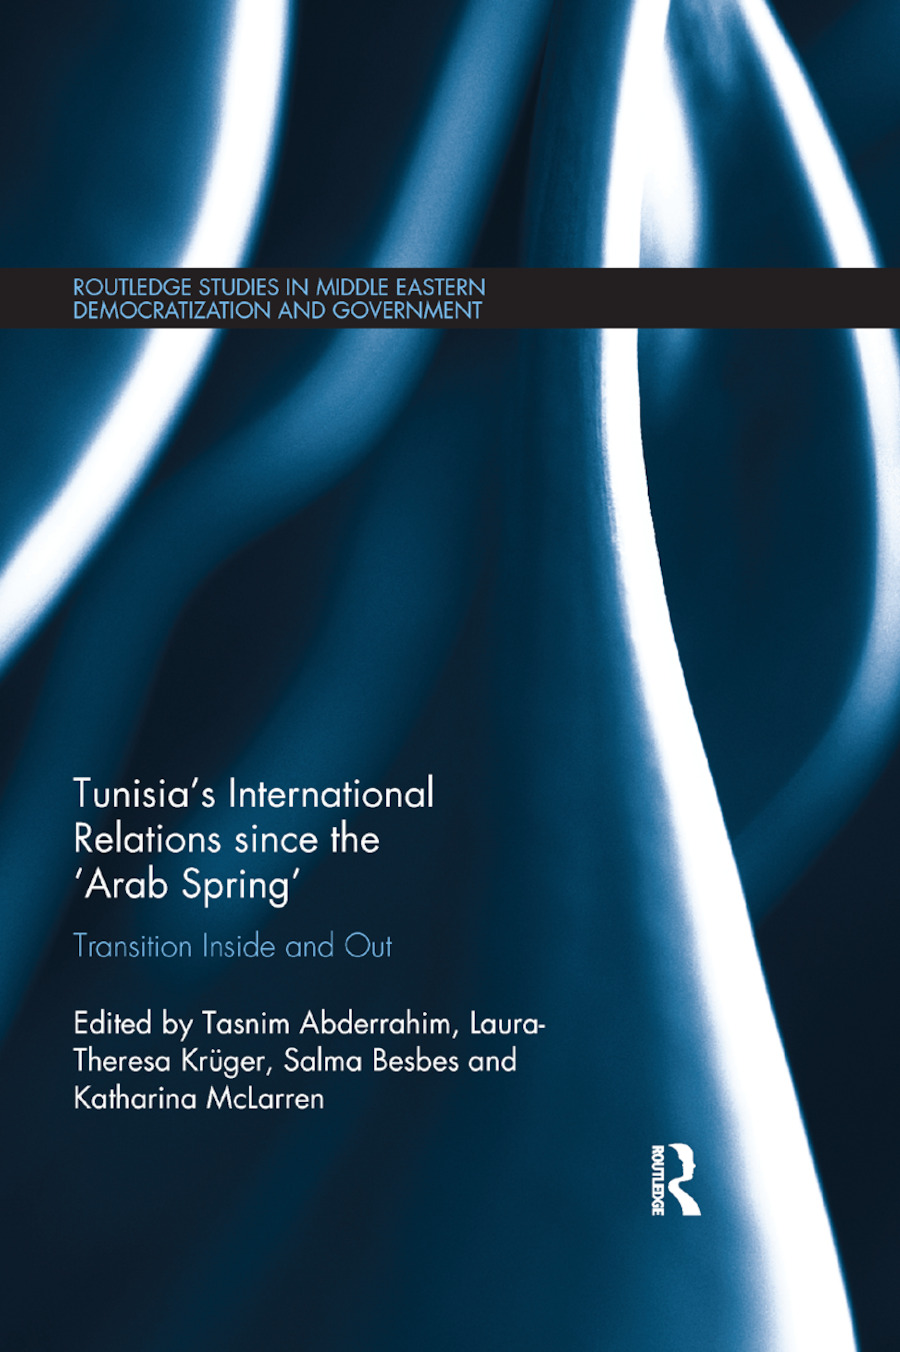 Tunisia's International Relations since the 'Arab Spring': Transition Inside and Out book cover